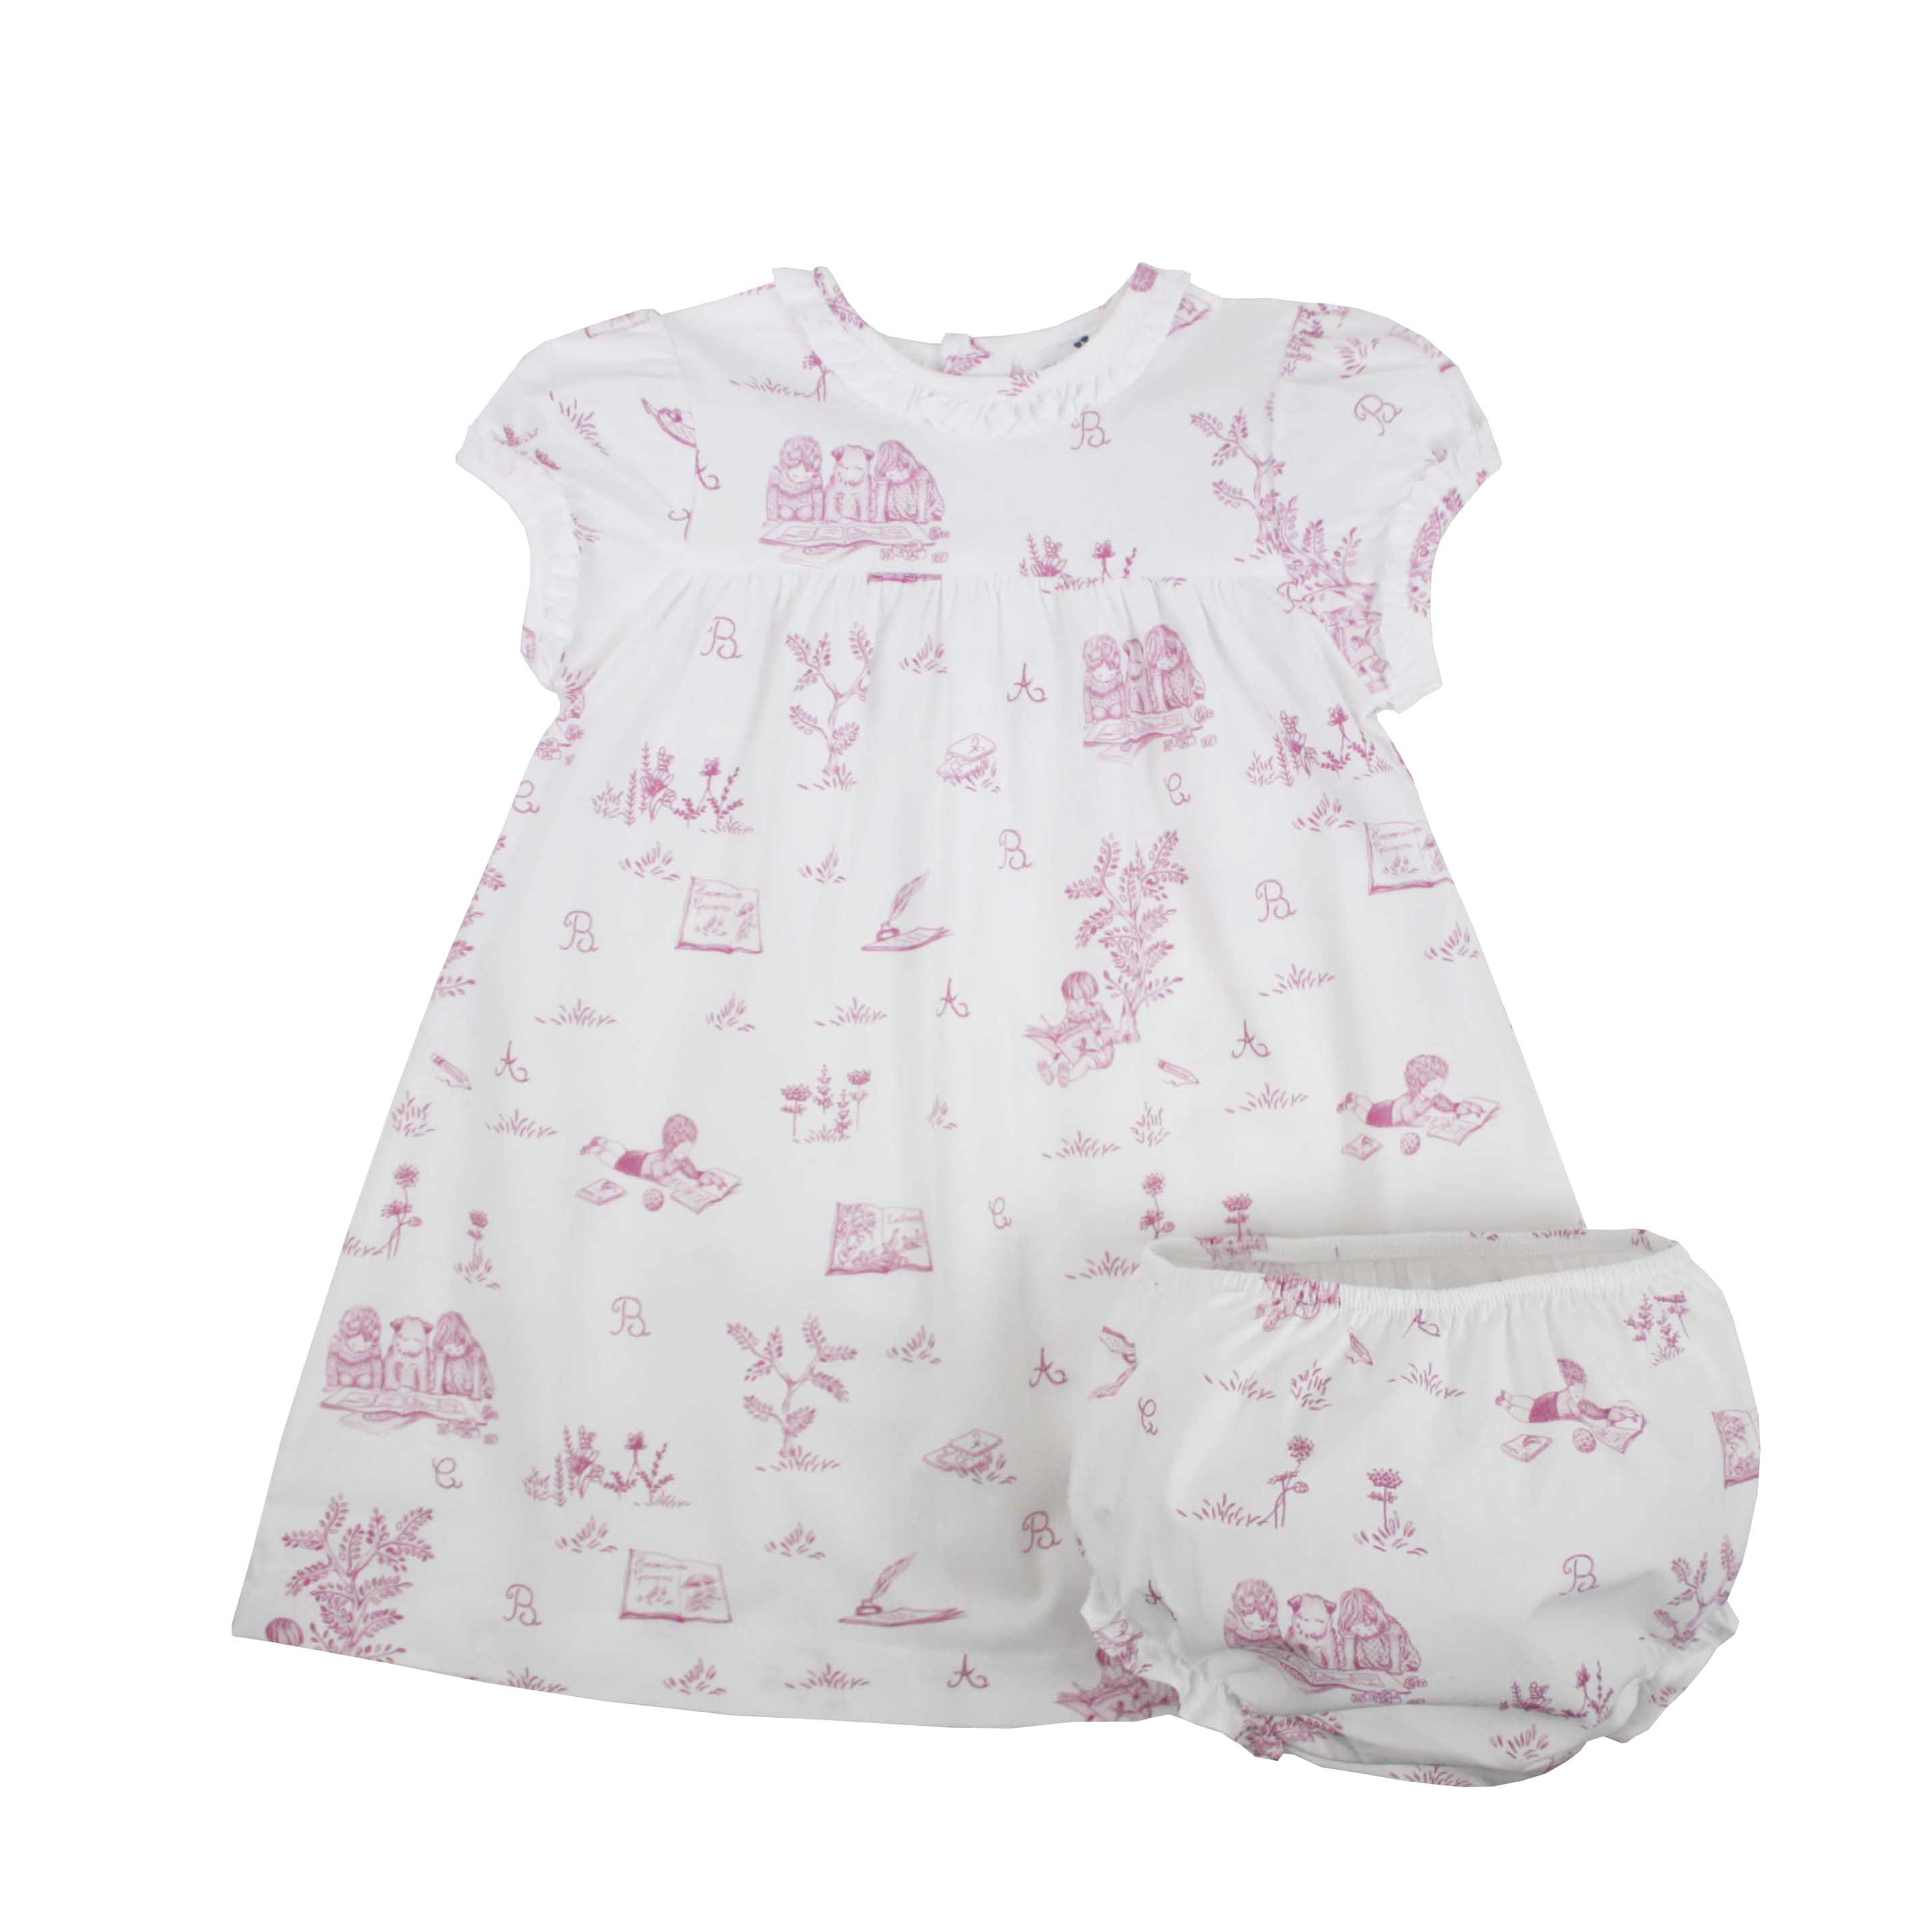 Girls' Clothing (0-24 Months) Outfits & Sets 6-9months. Girls Pink Short Dungarees